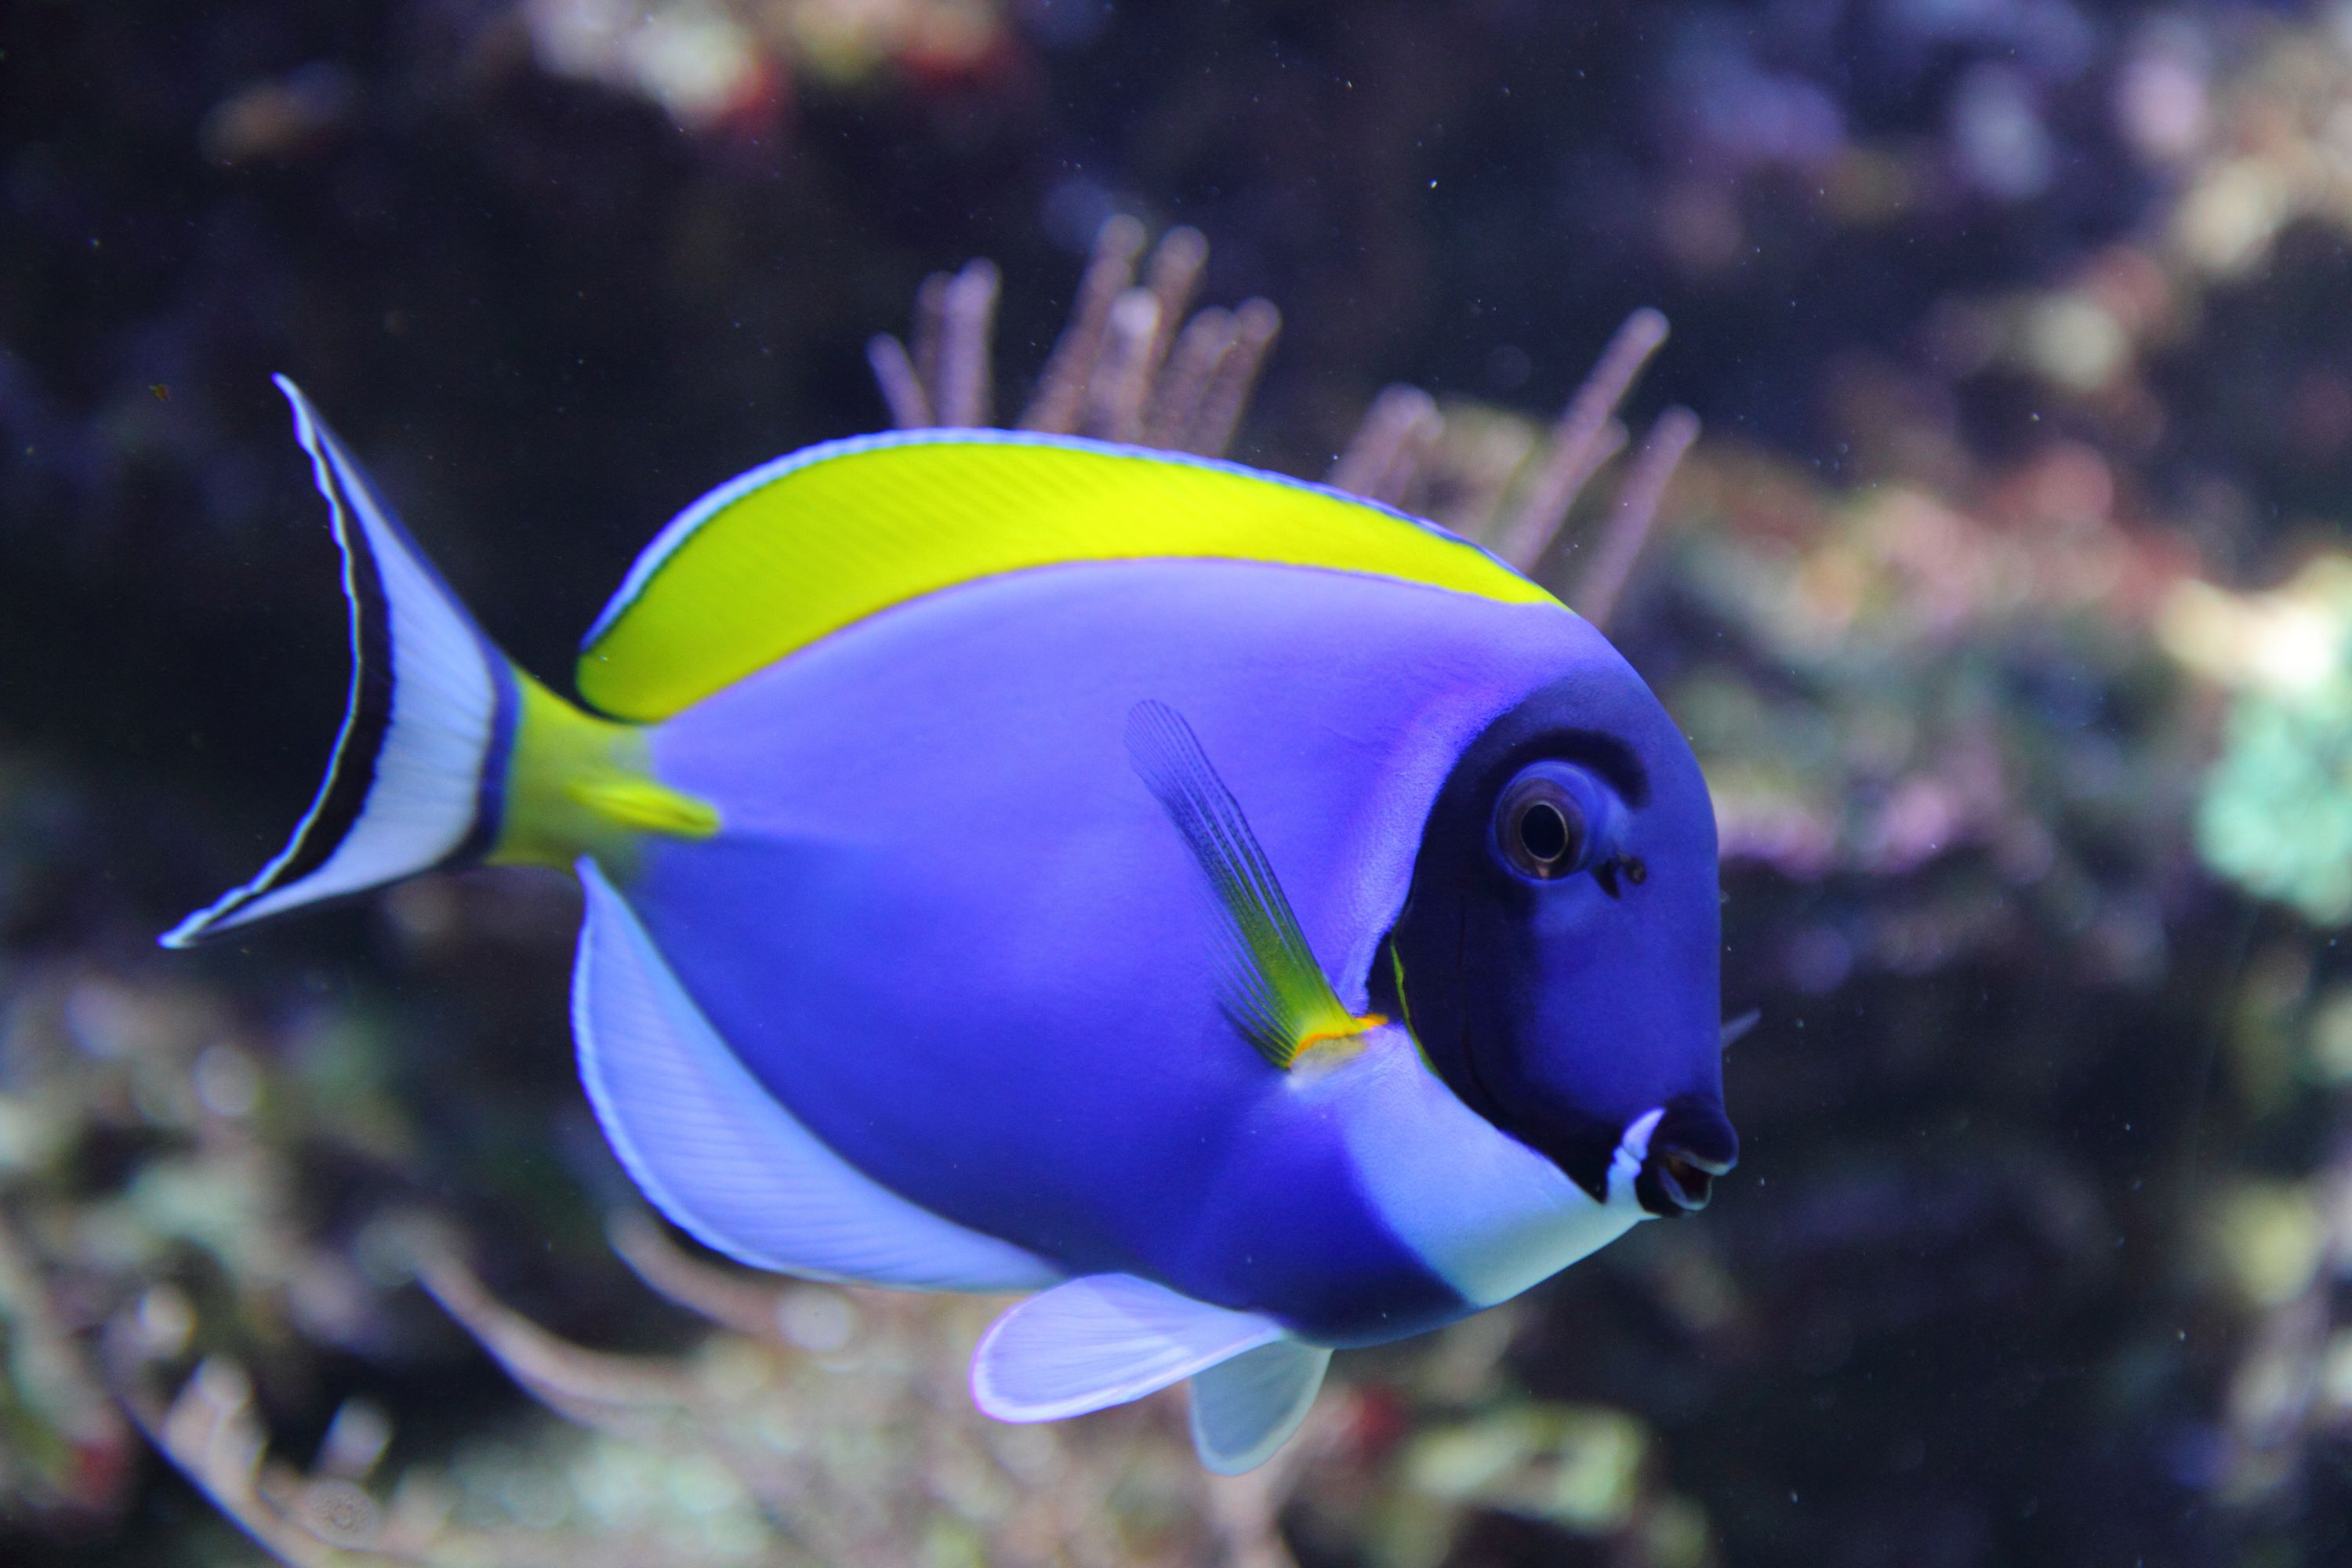 generally caring for saltwater fish is more challenging